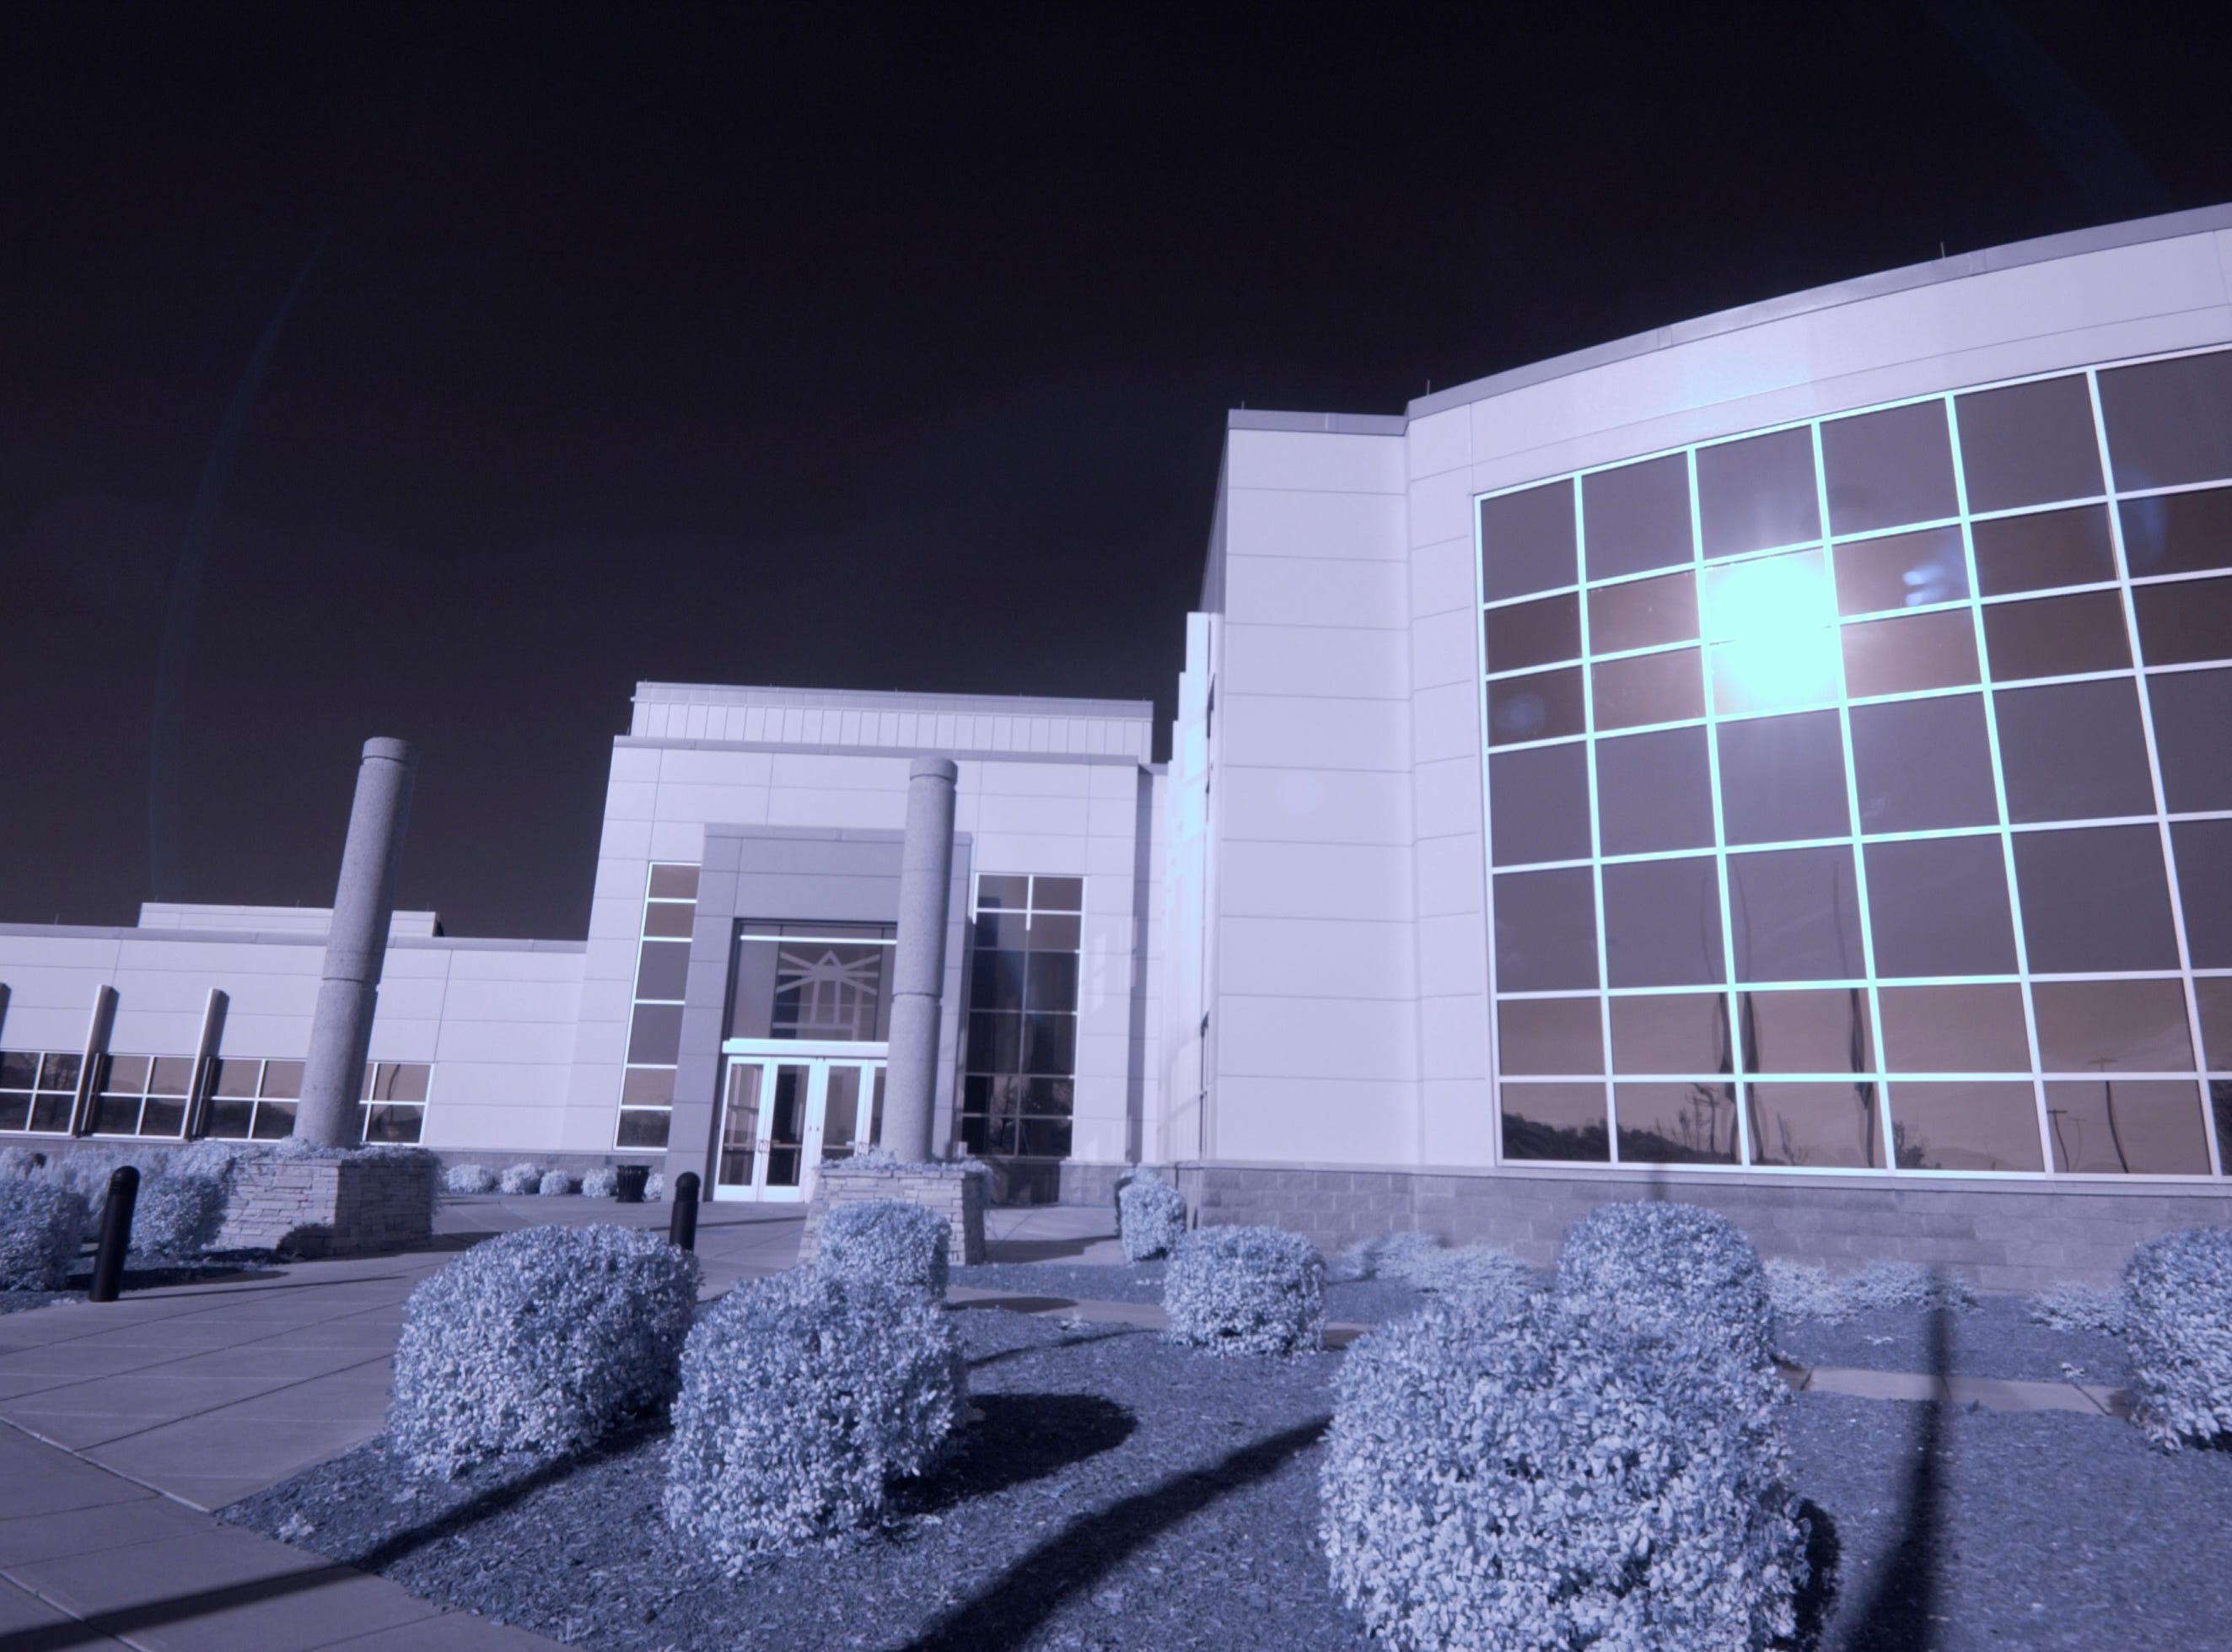 The Knoxville News Sentinel building, seen in B&W infrared. A specially modified digital camera, with the IR cutoff filter removed, allows IR and near-IR light to be recorded. Plants containing chlorophyl reflect a greater amount of IR light, and as a result, are recorded as very light shades of gray.